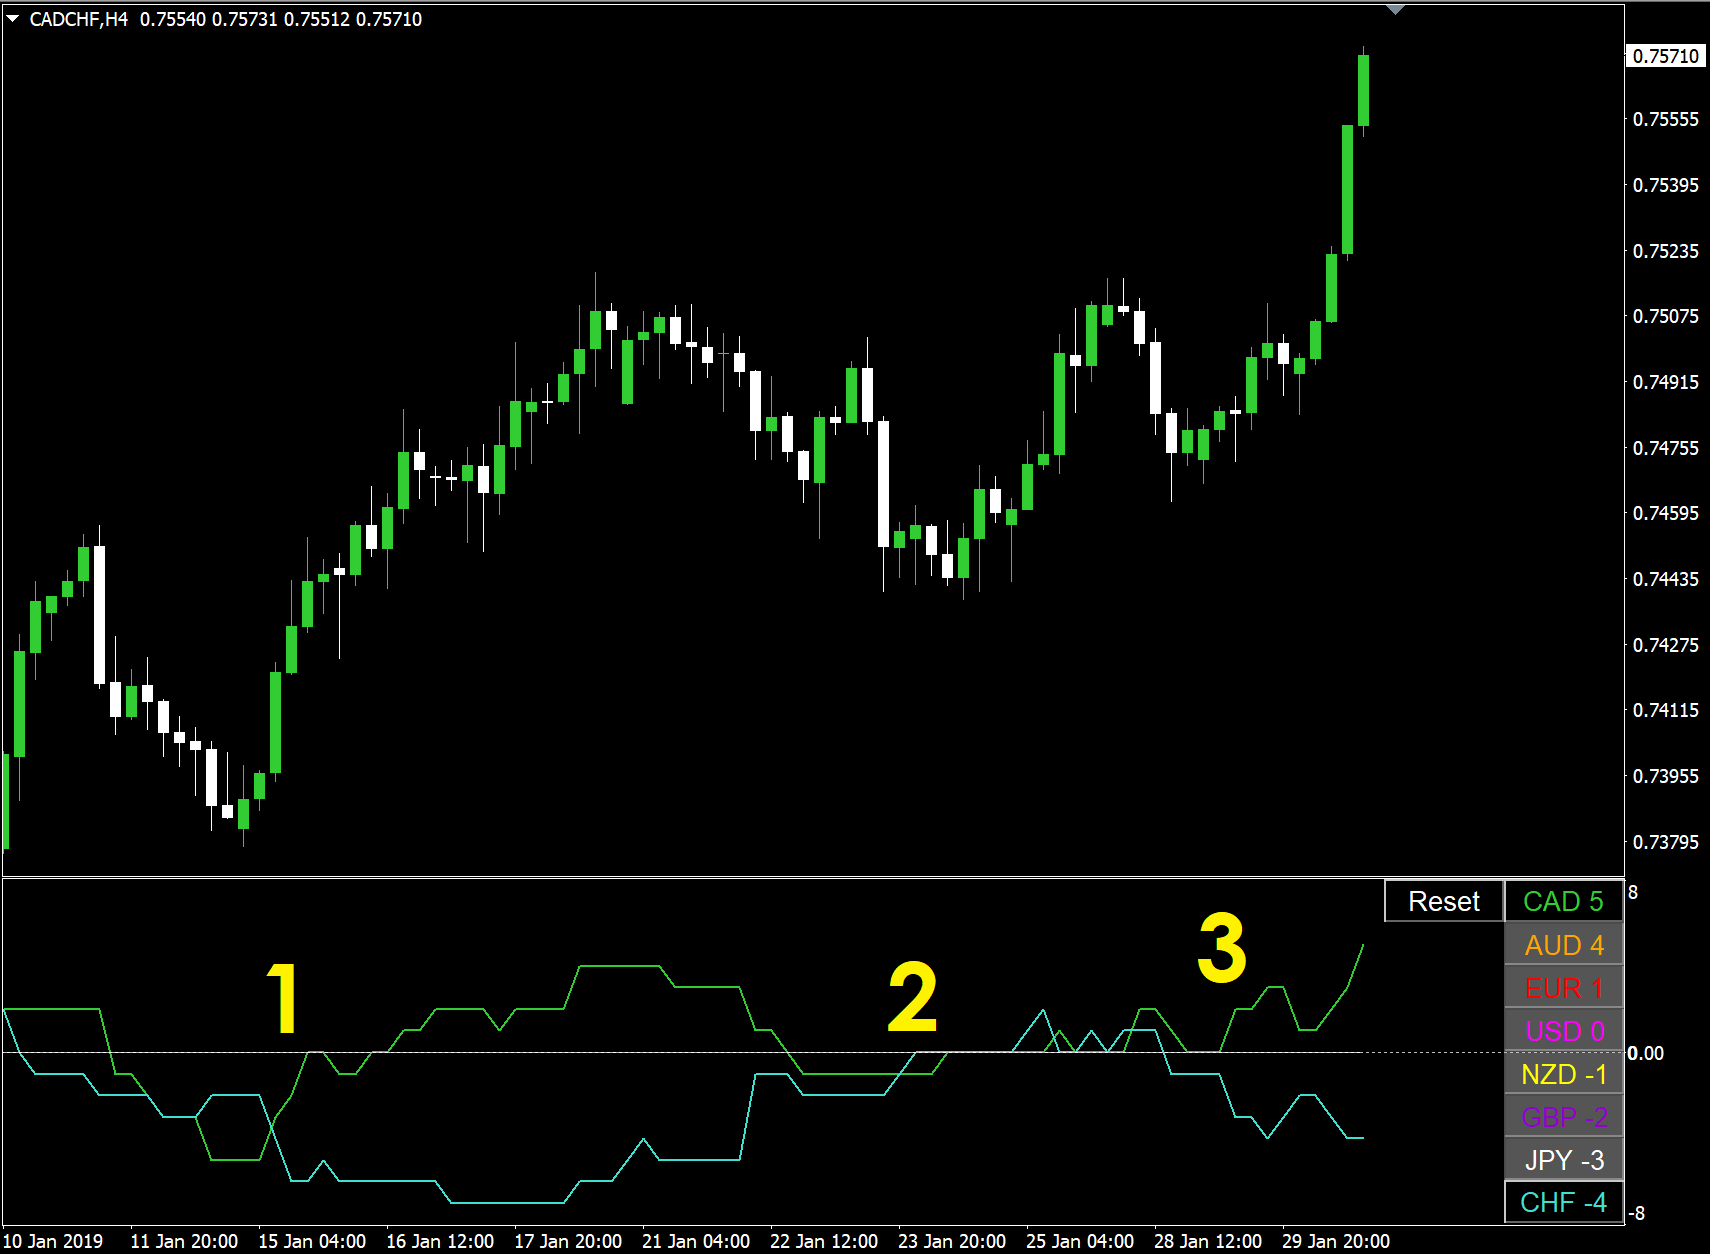 CADCHF currency strength chart